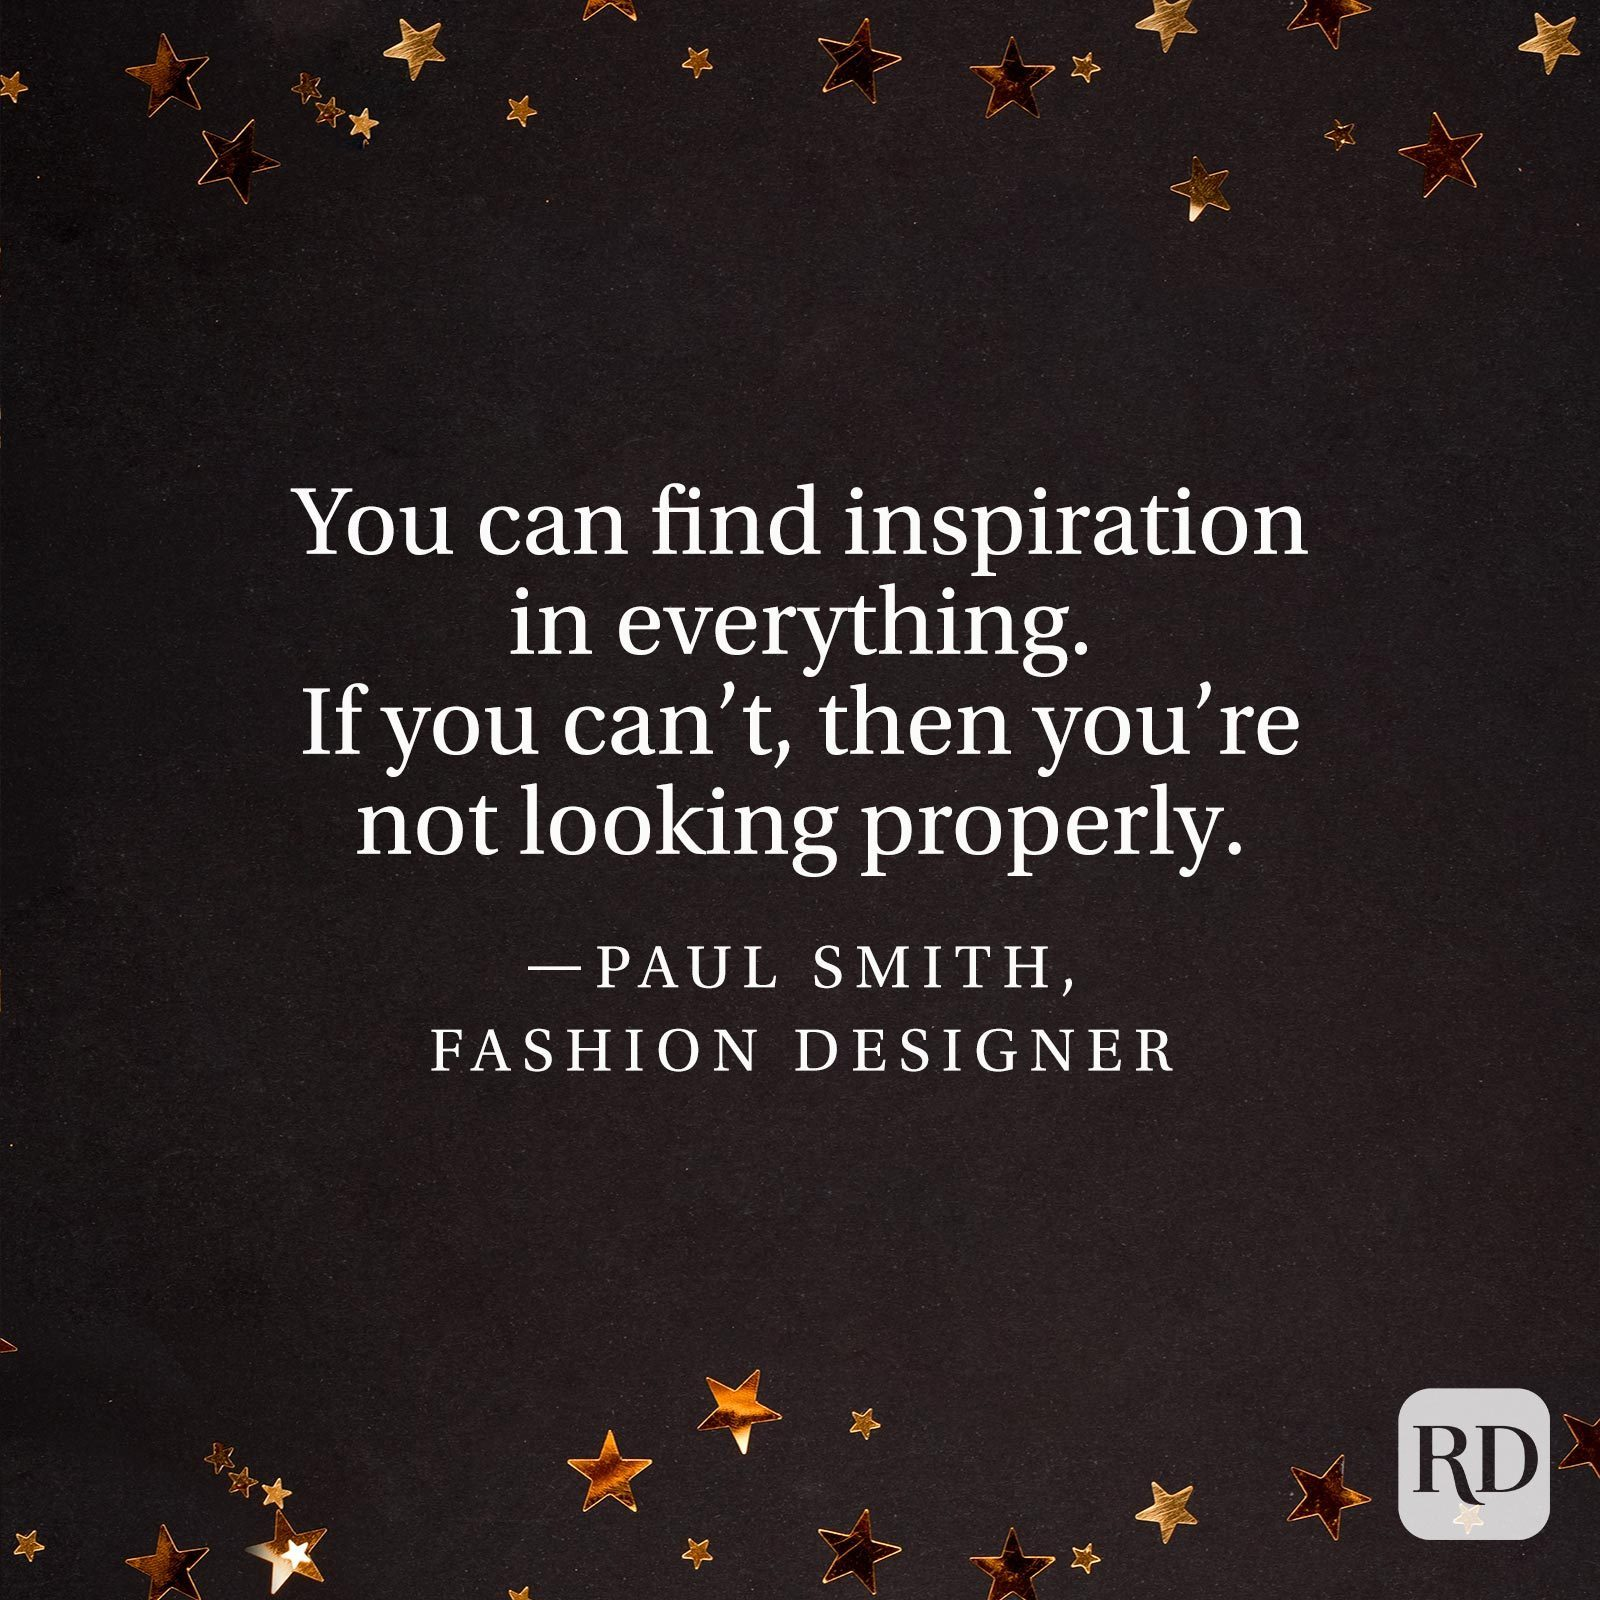 """""""You can find inspiration in everything. If you can't, then you're not looking properly.""""—Paul Smith, fashion designer."""